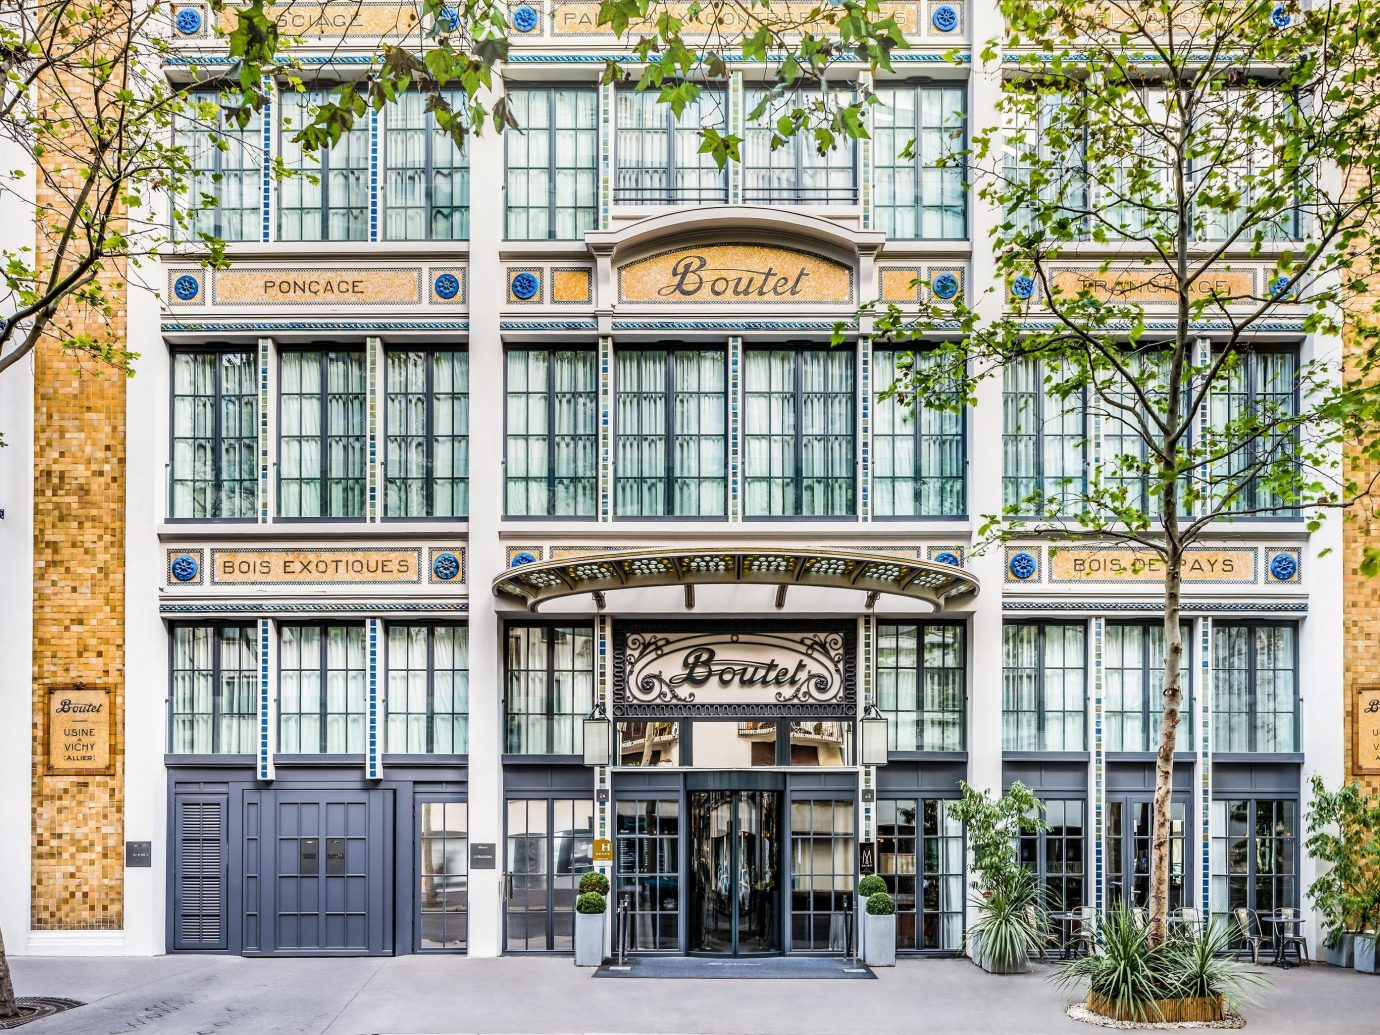 Boutique Hotels Hotels Jetsetter Guides Luxury Travel building outdoor tree mixed use Architecture facade commercial building neighbourhood real estate condominium house City window